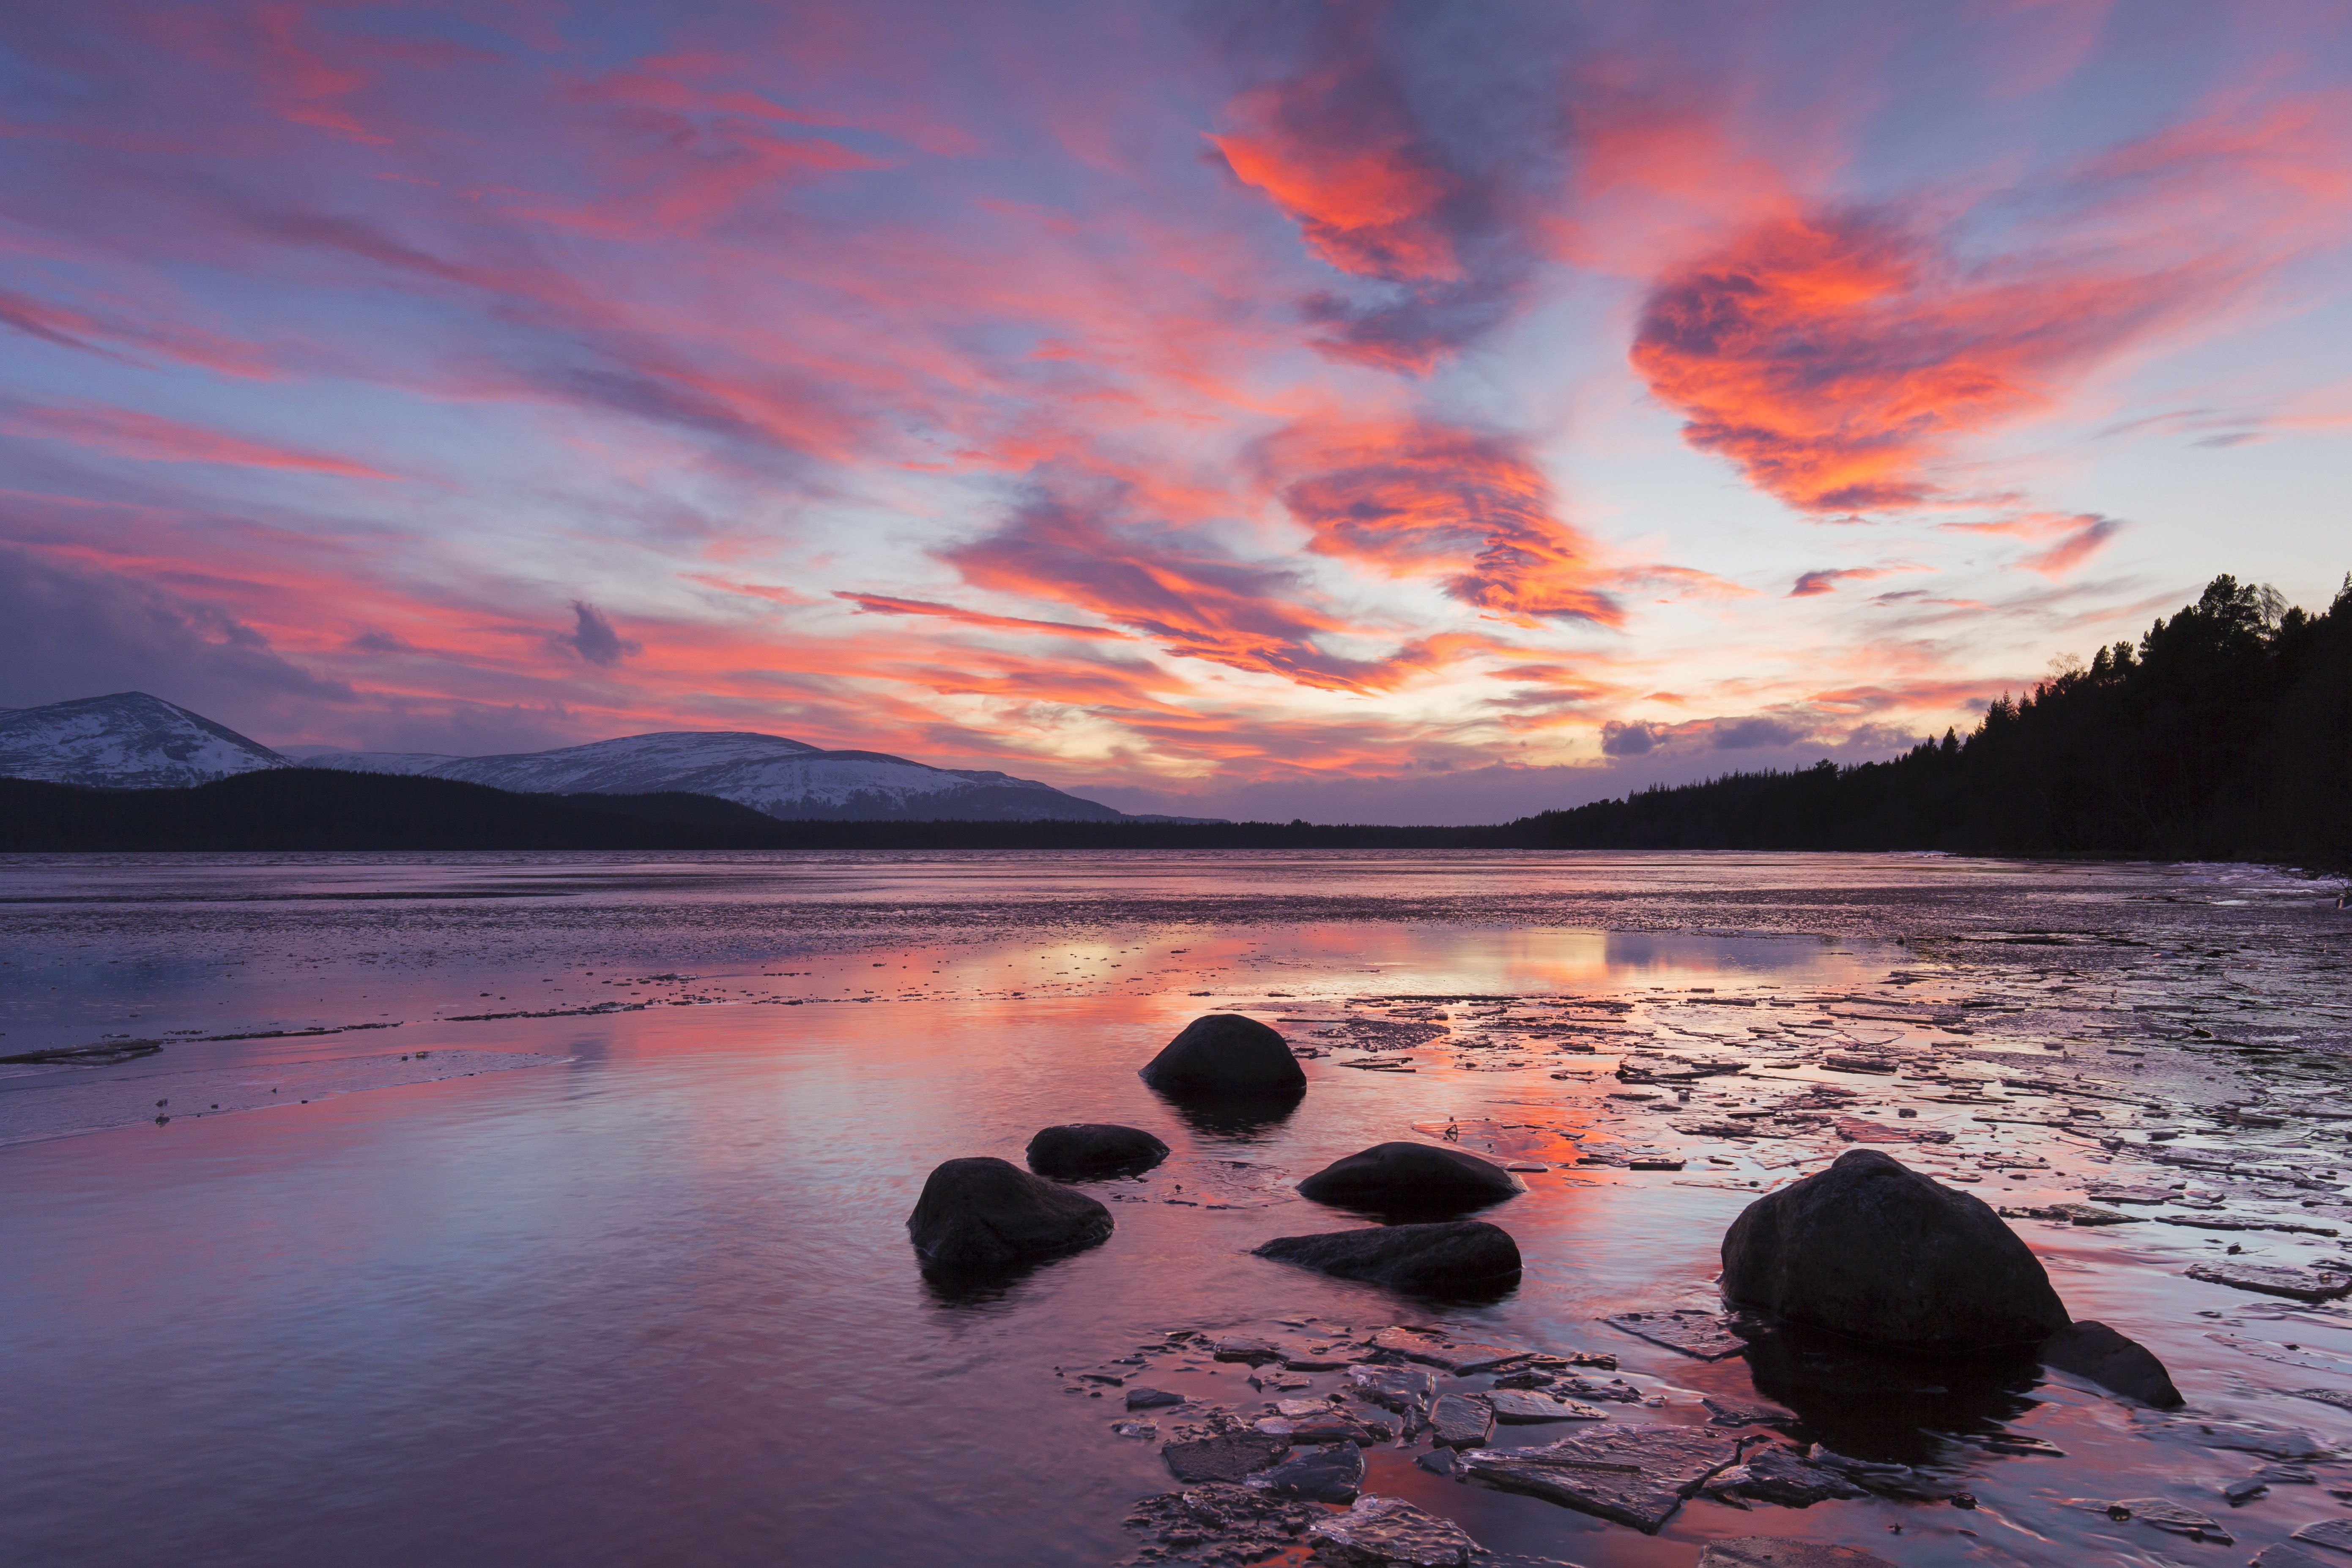 Loch Morlich at sunset in winter.